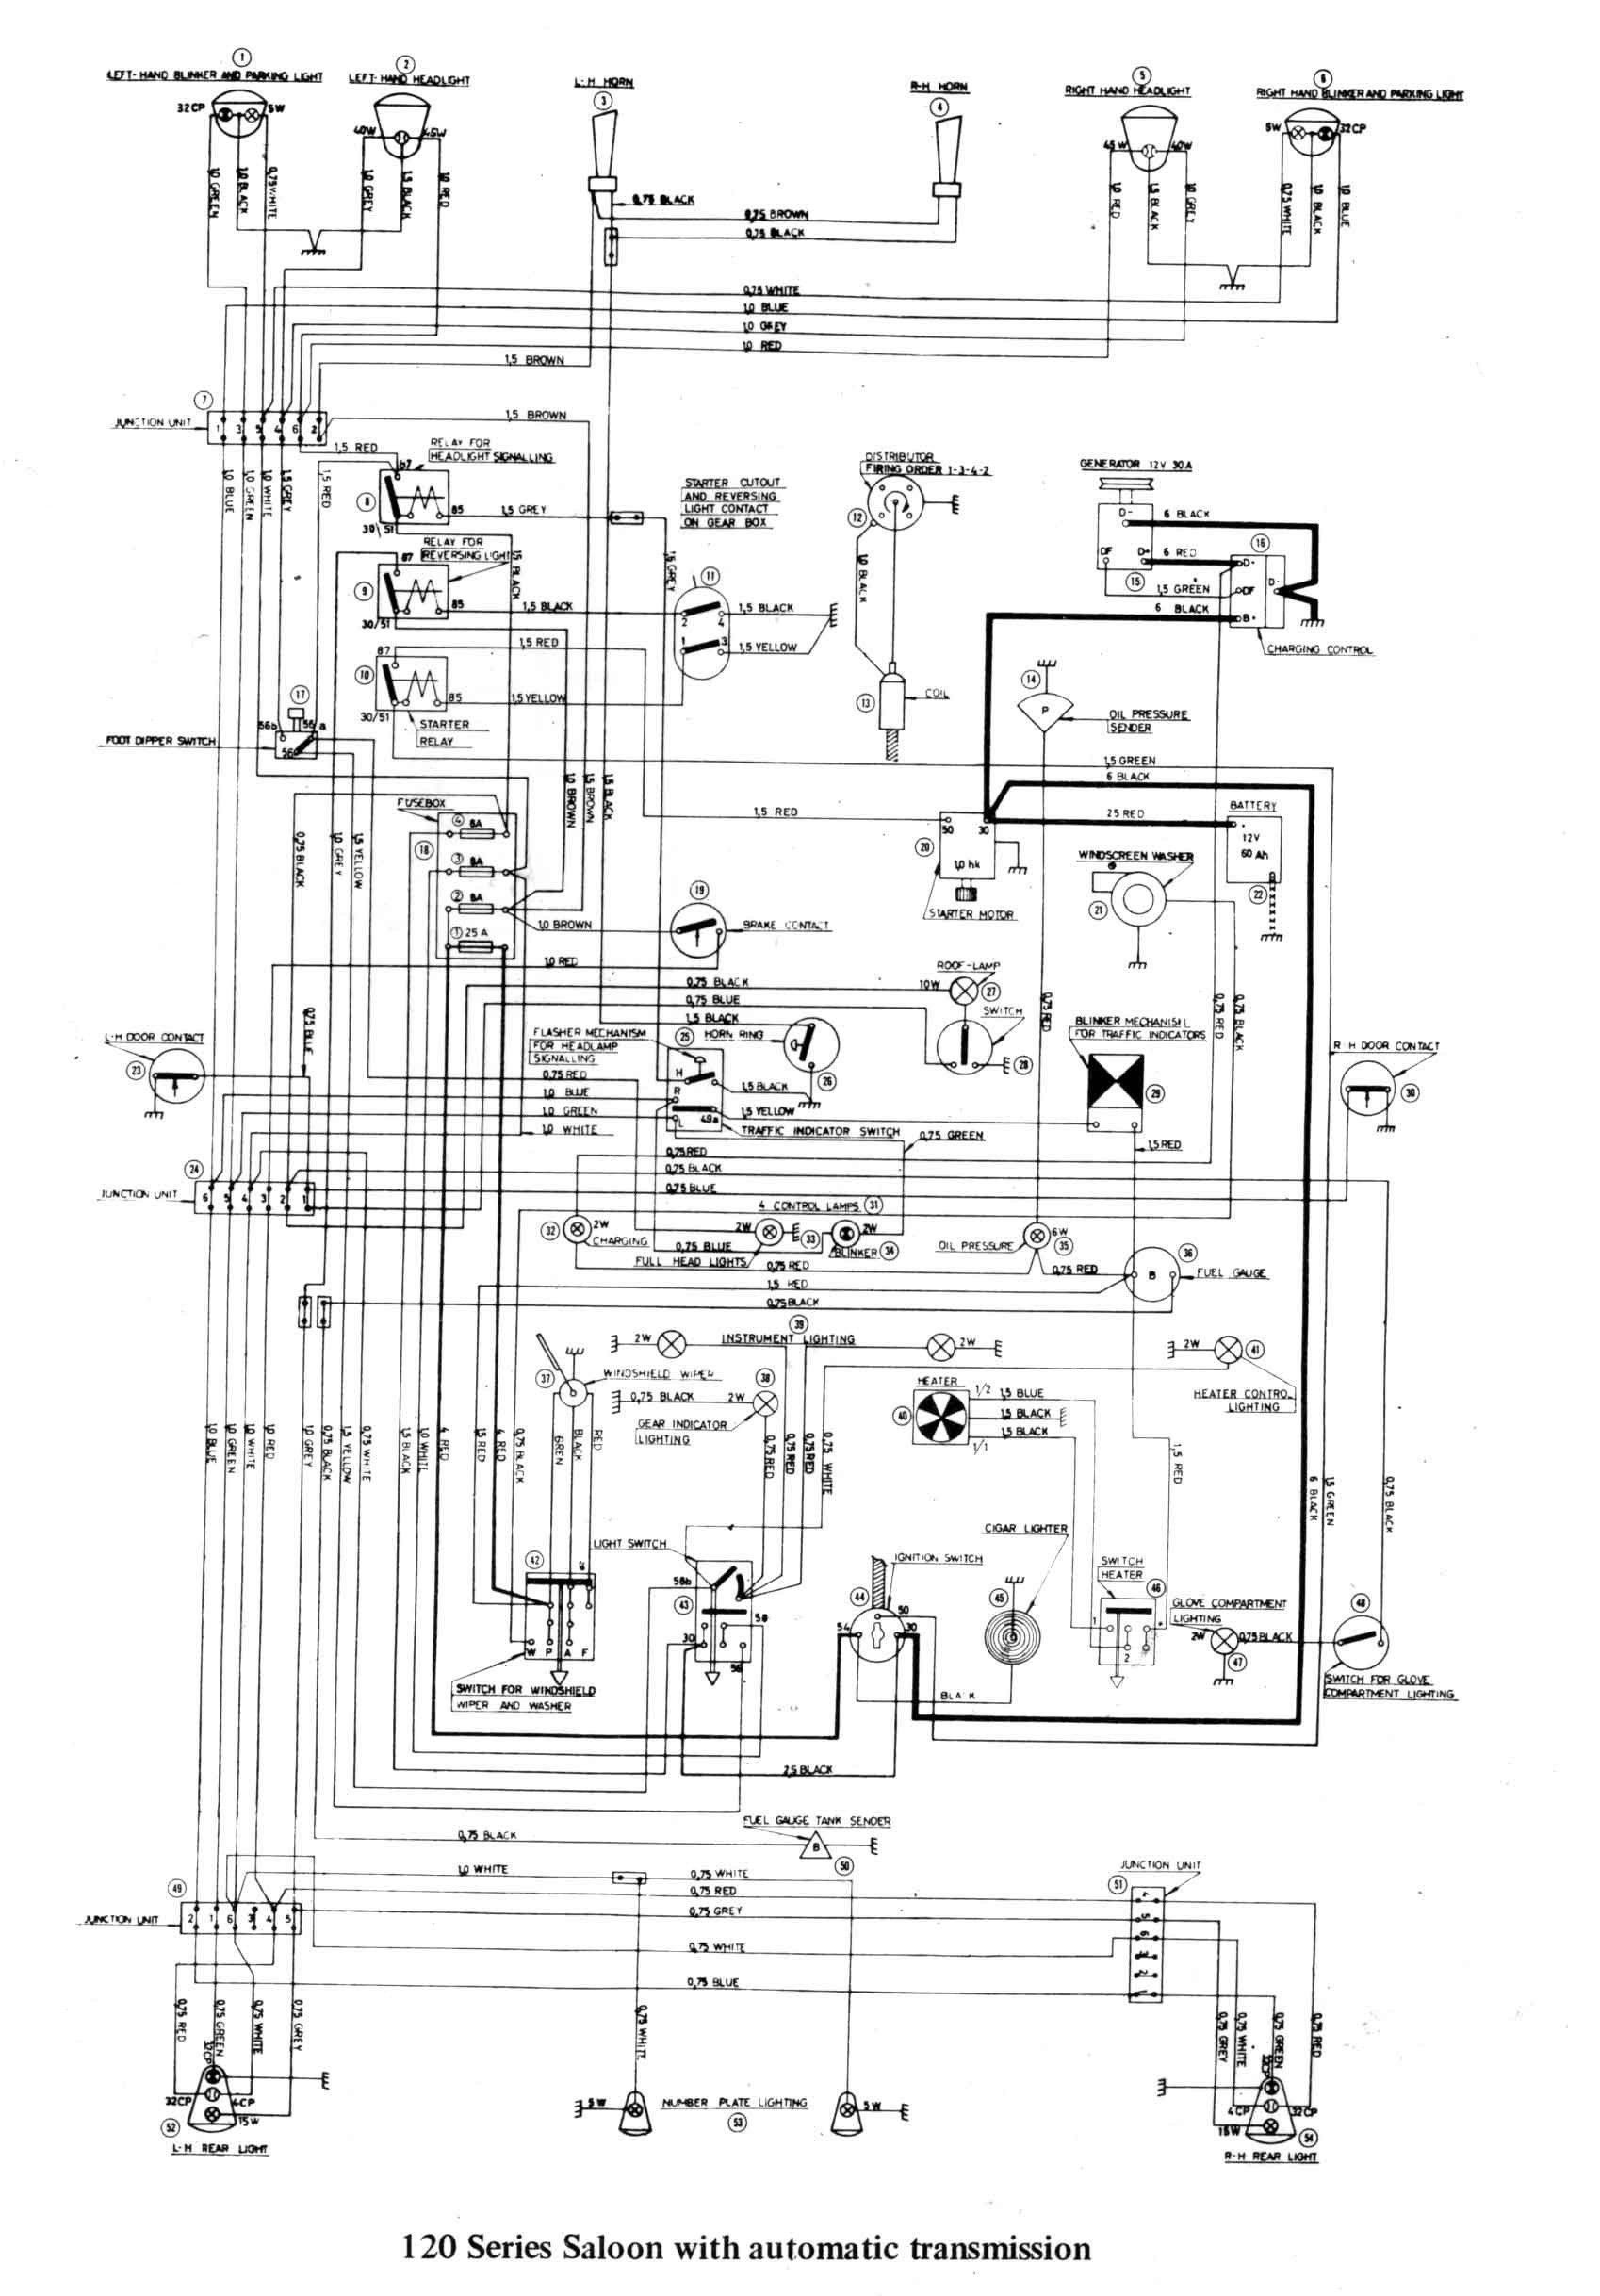 volvo etm wiring diagram wiring diagram u2022 rh ebode co semi truck radio wiring diagram semi truck pigtail wiring diagram